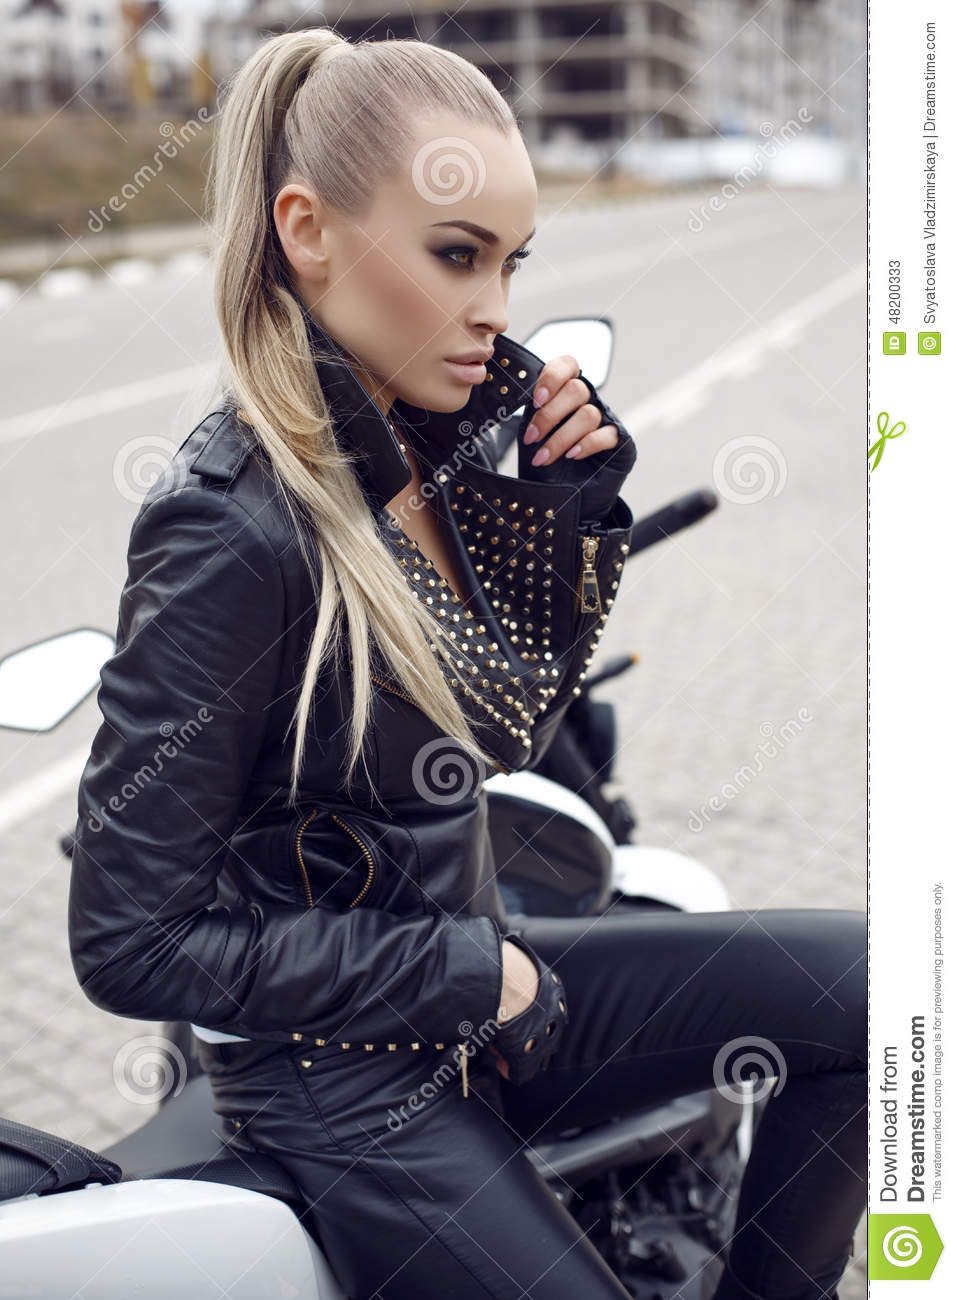 7eb7851d8 Girl With Long Blond Hair In Leather Jacket